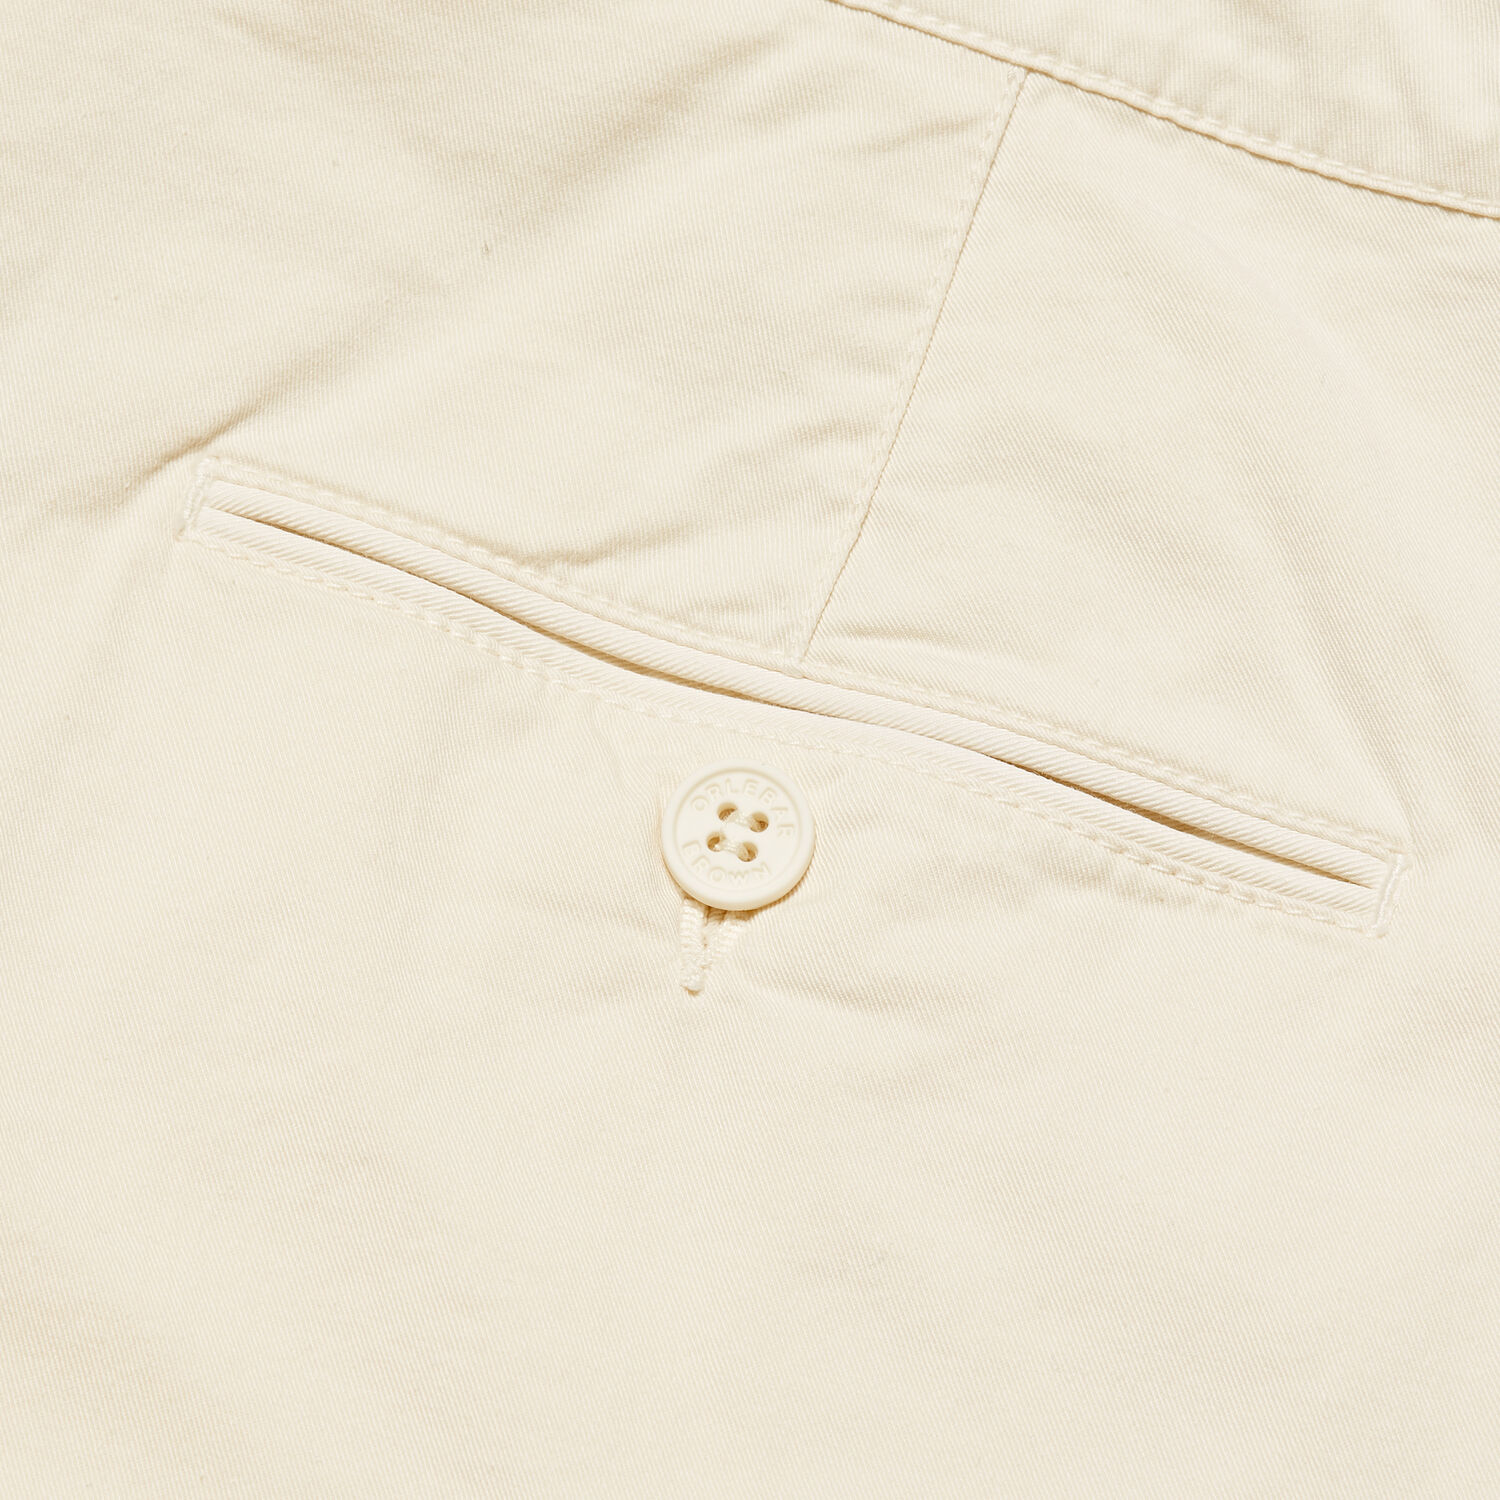 Bulldog Cotton Twill